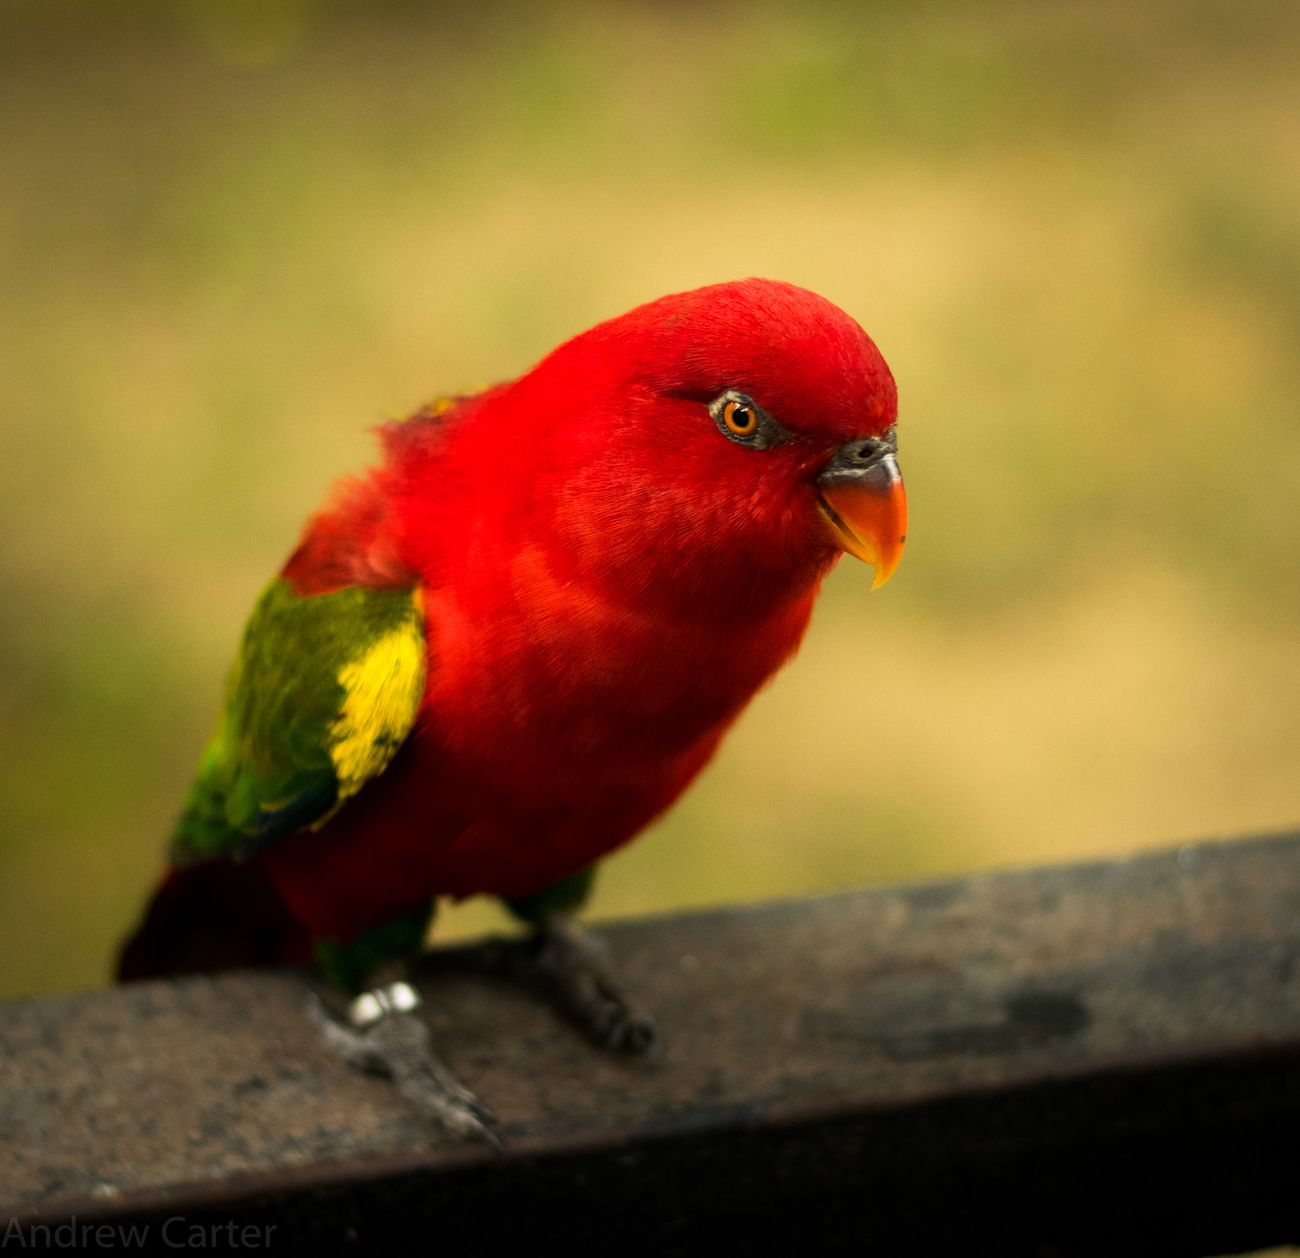 Small red bird